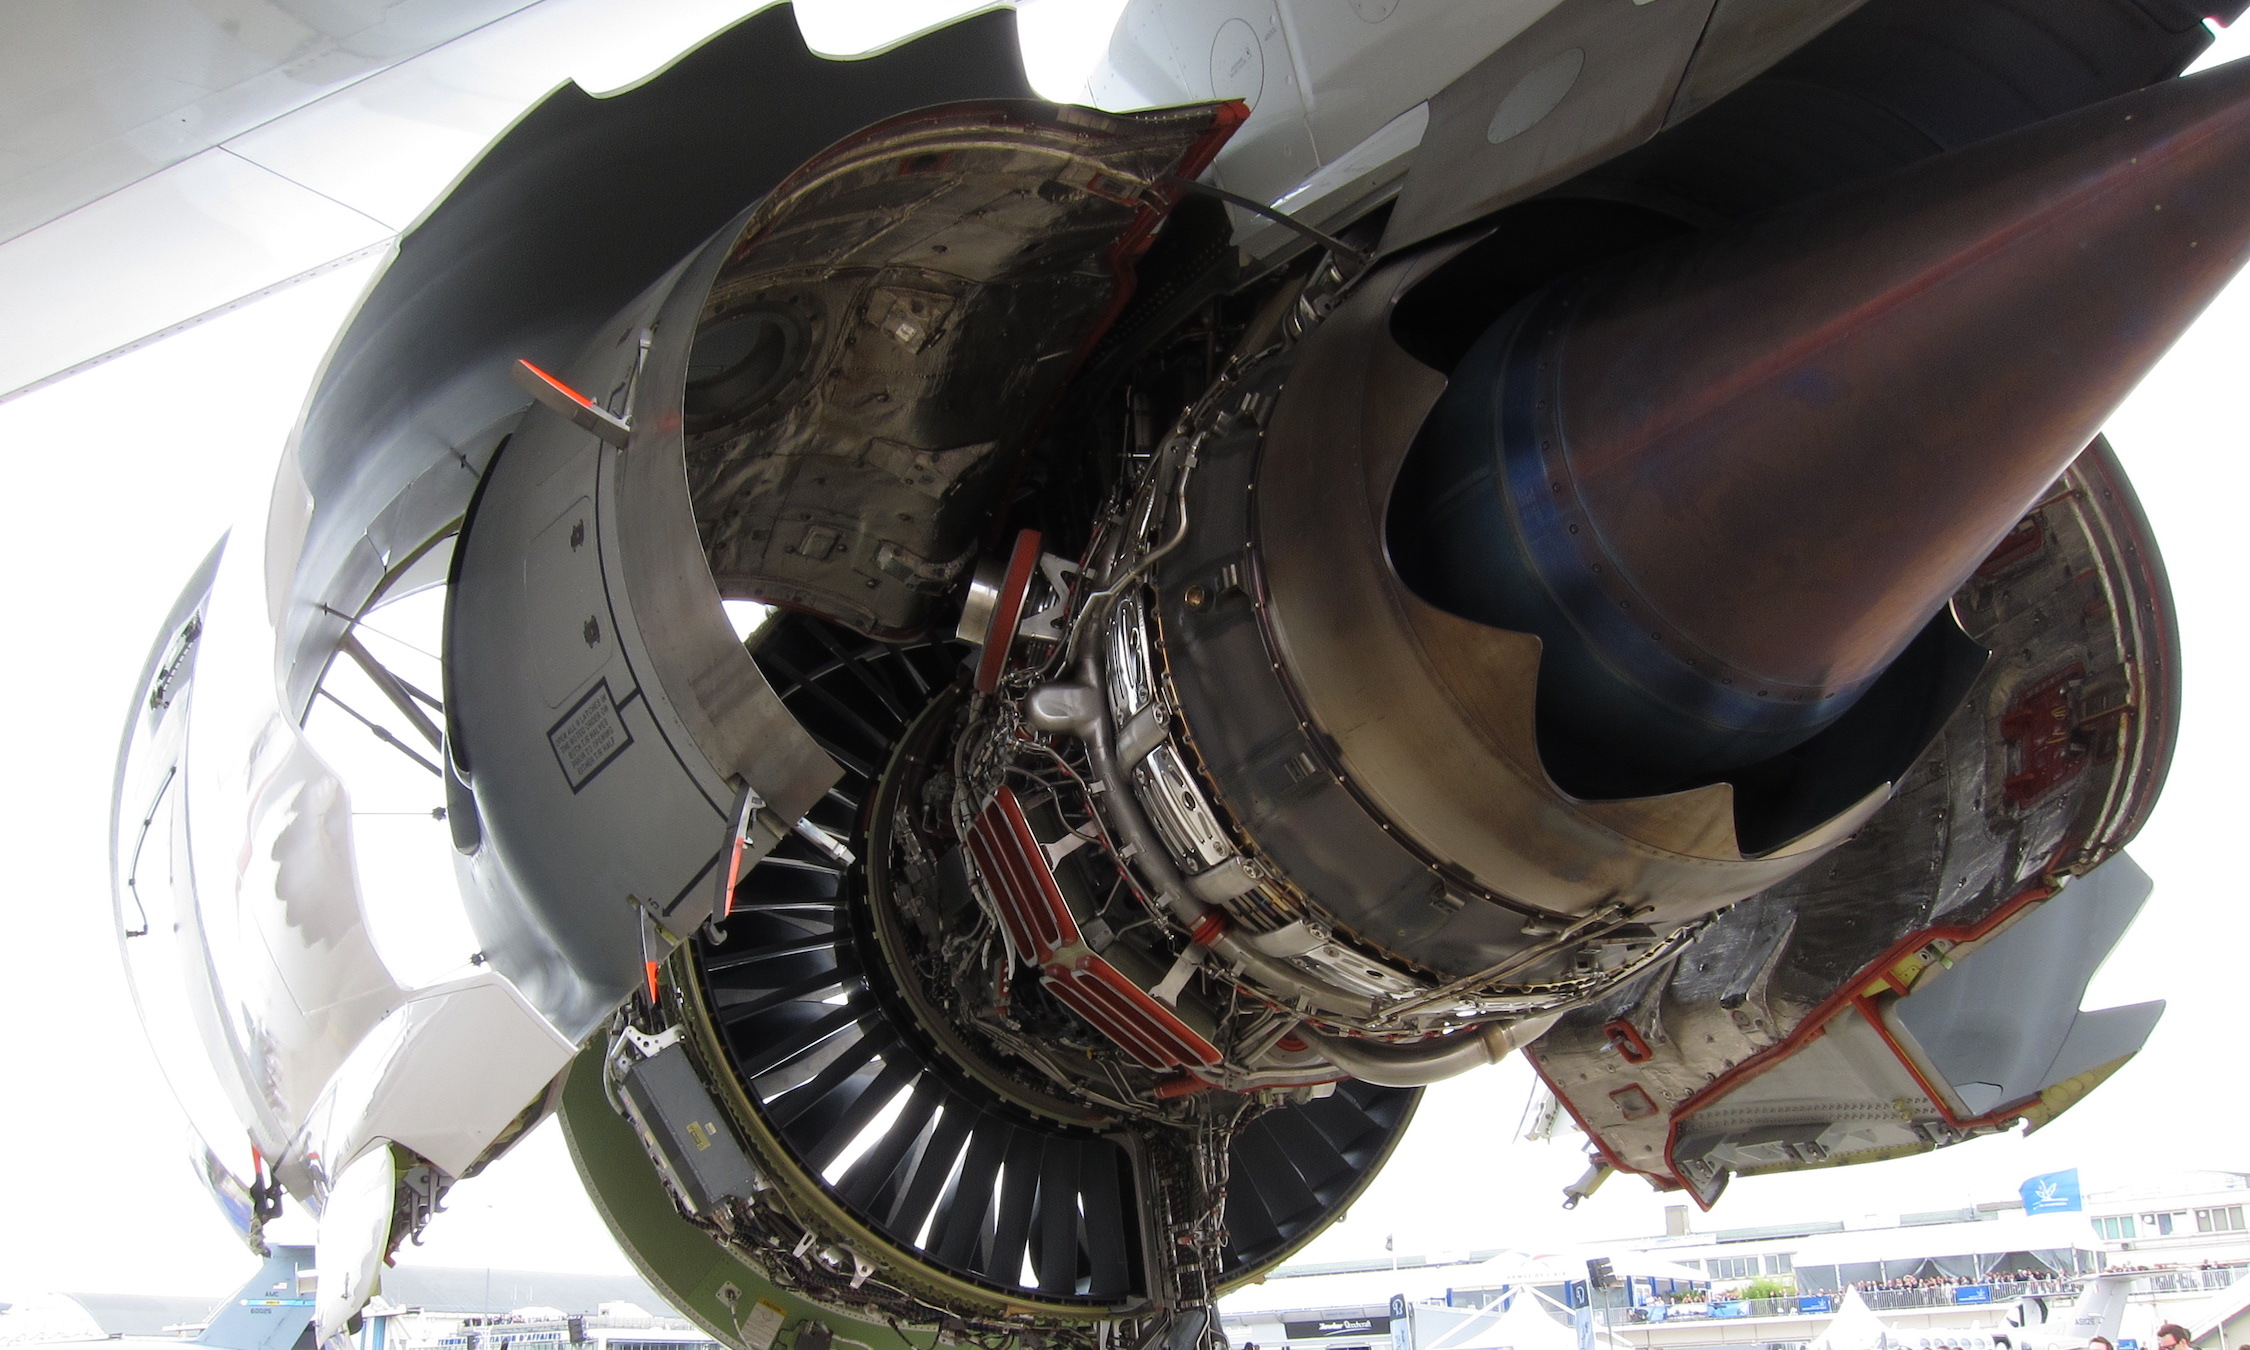 GE Aviation: From Data Silos to Self-Service